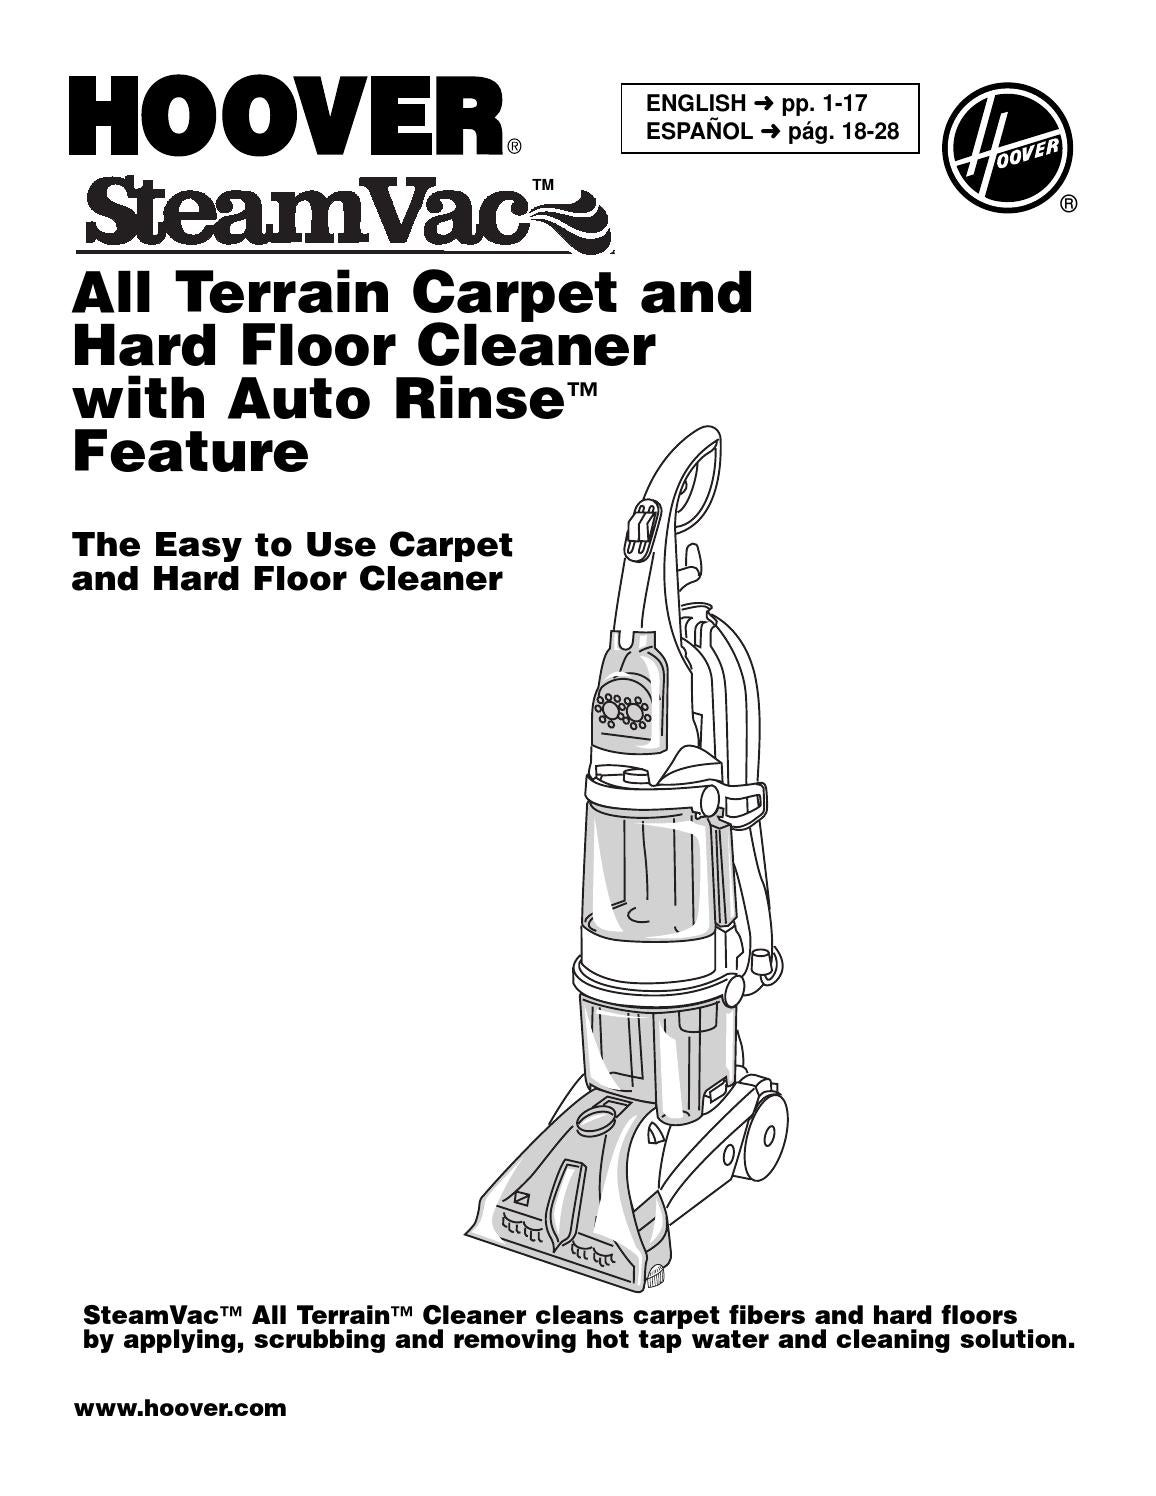 Hoover maxextract dual v all terrain manual by Aragonez